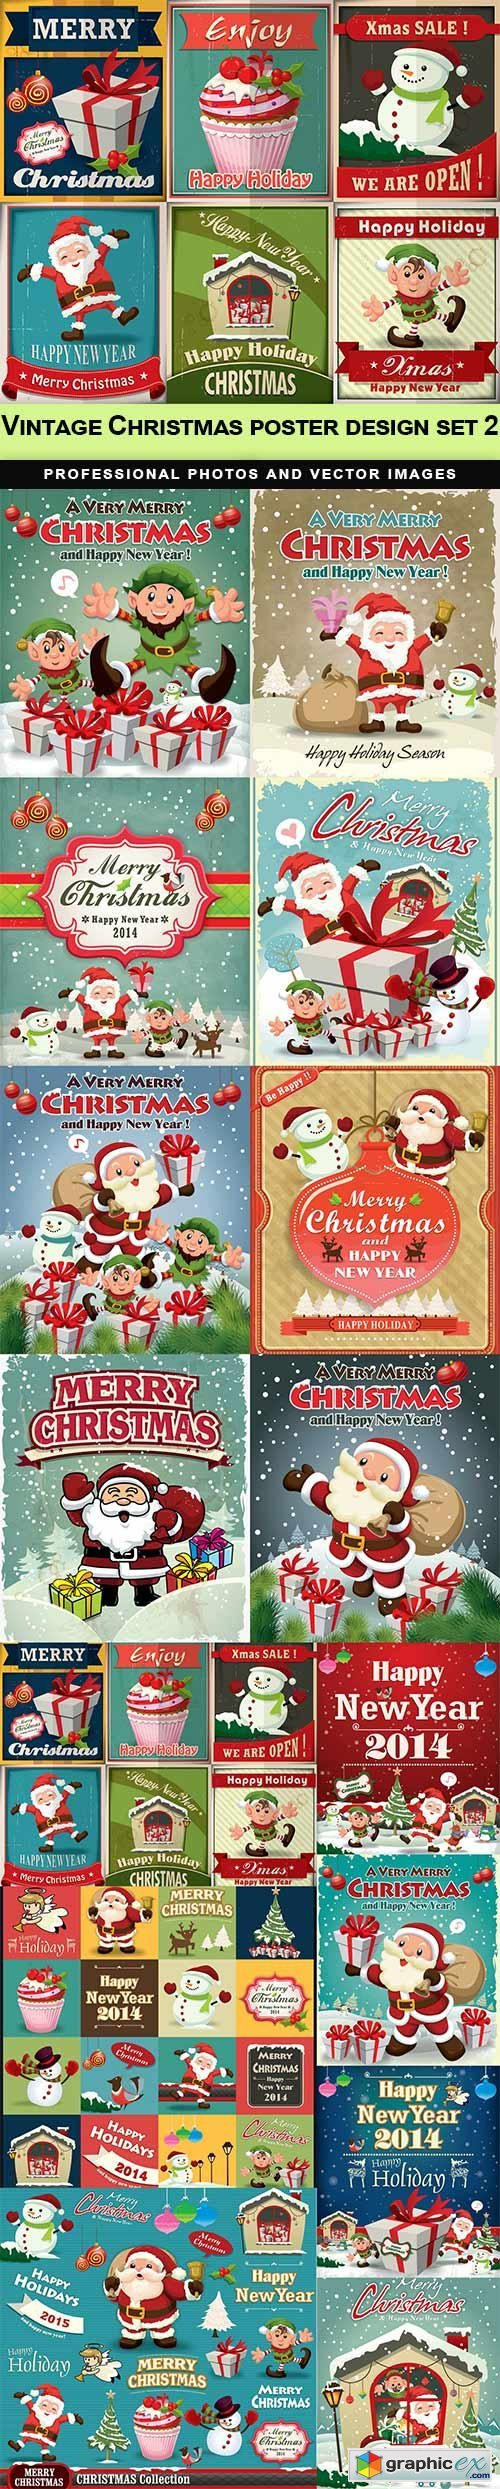 Vintage Christmas poster design set 2